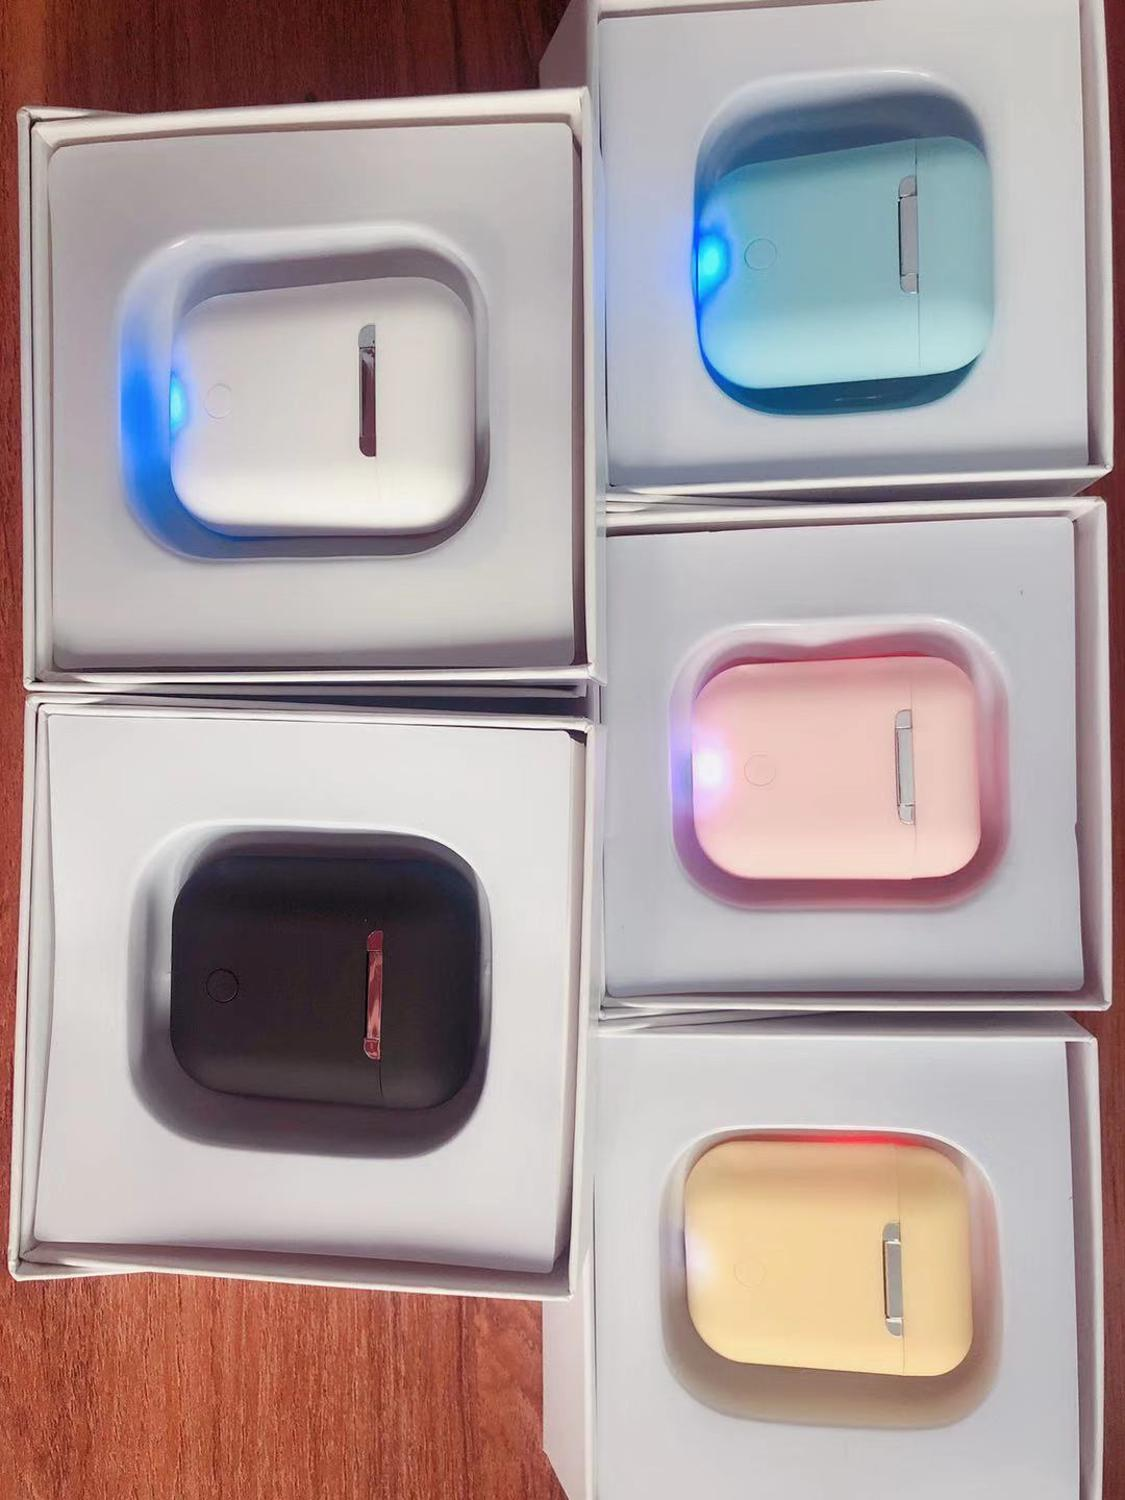 inpods 12 <font><b>i11</b></font> <font><b>tws</b></font> Wireless <font><b>Bluetooth</b></font> <font><b>5.0</b></font> Earbuds <font><b>Bluetooth</b></font> Headsets 3D Sound Cordless Headset Pk i10 i 12 <font><b>tws</b></font> i30 i60 image